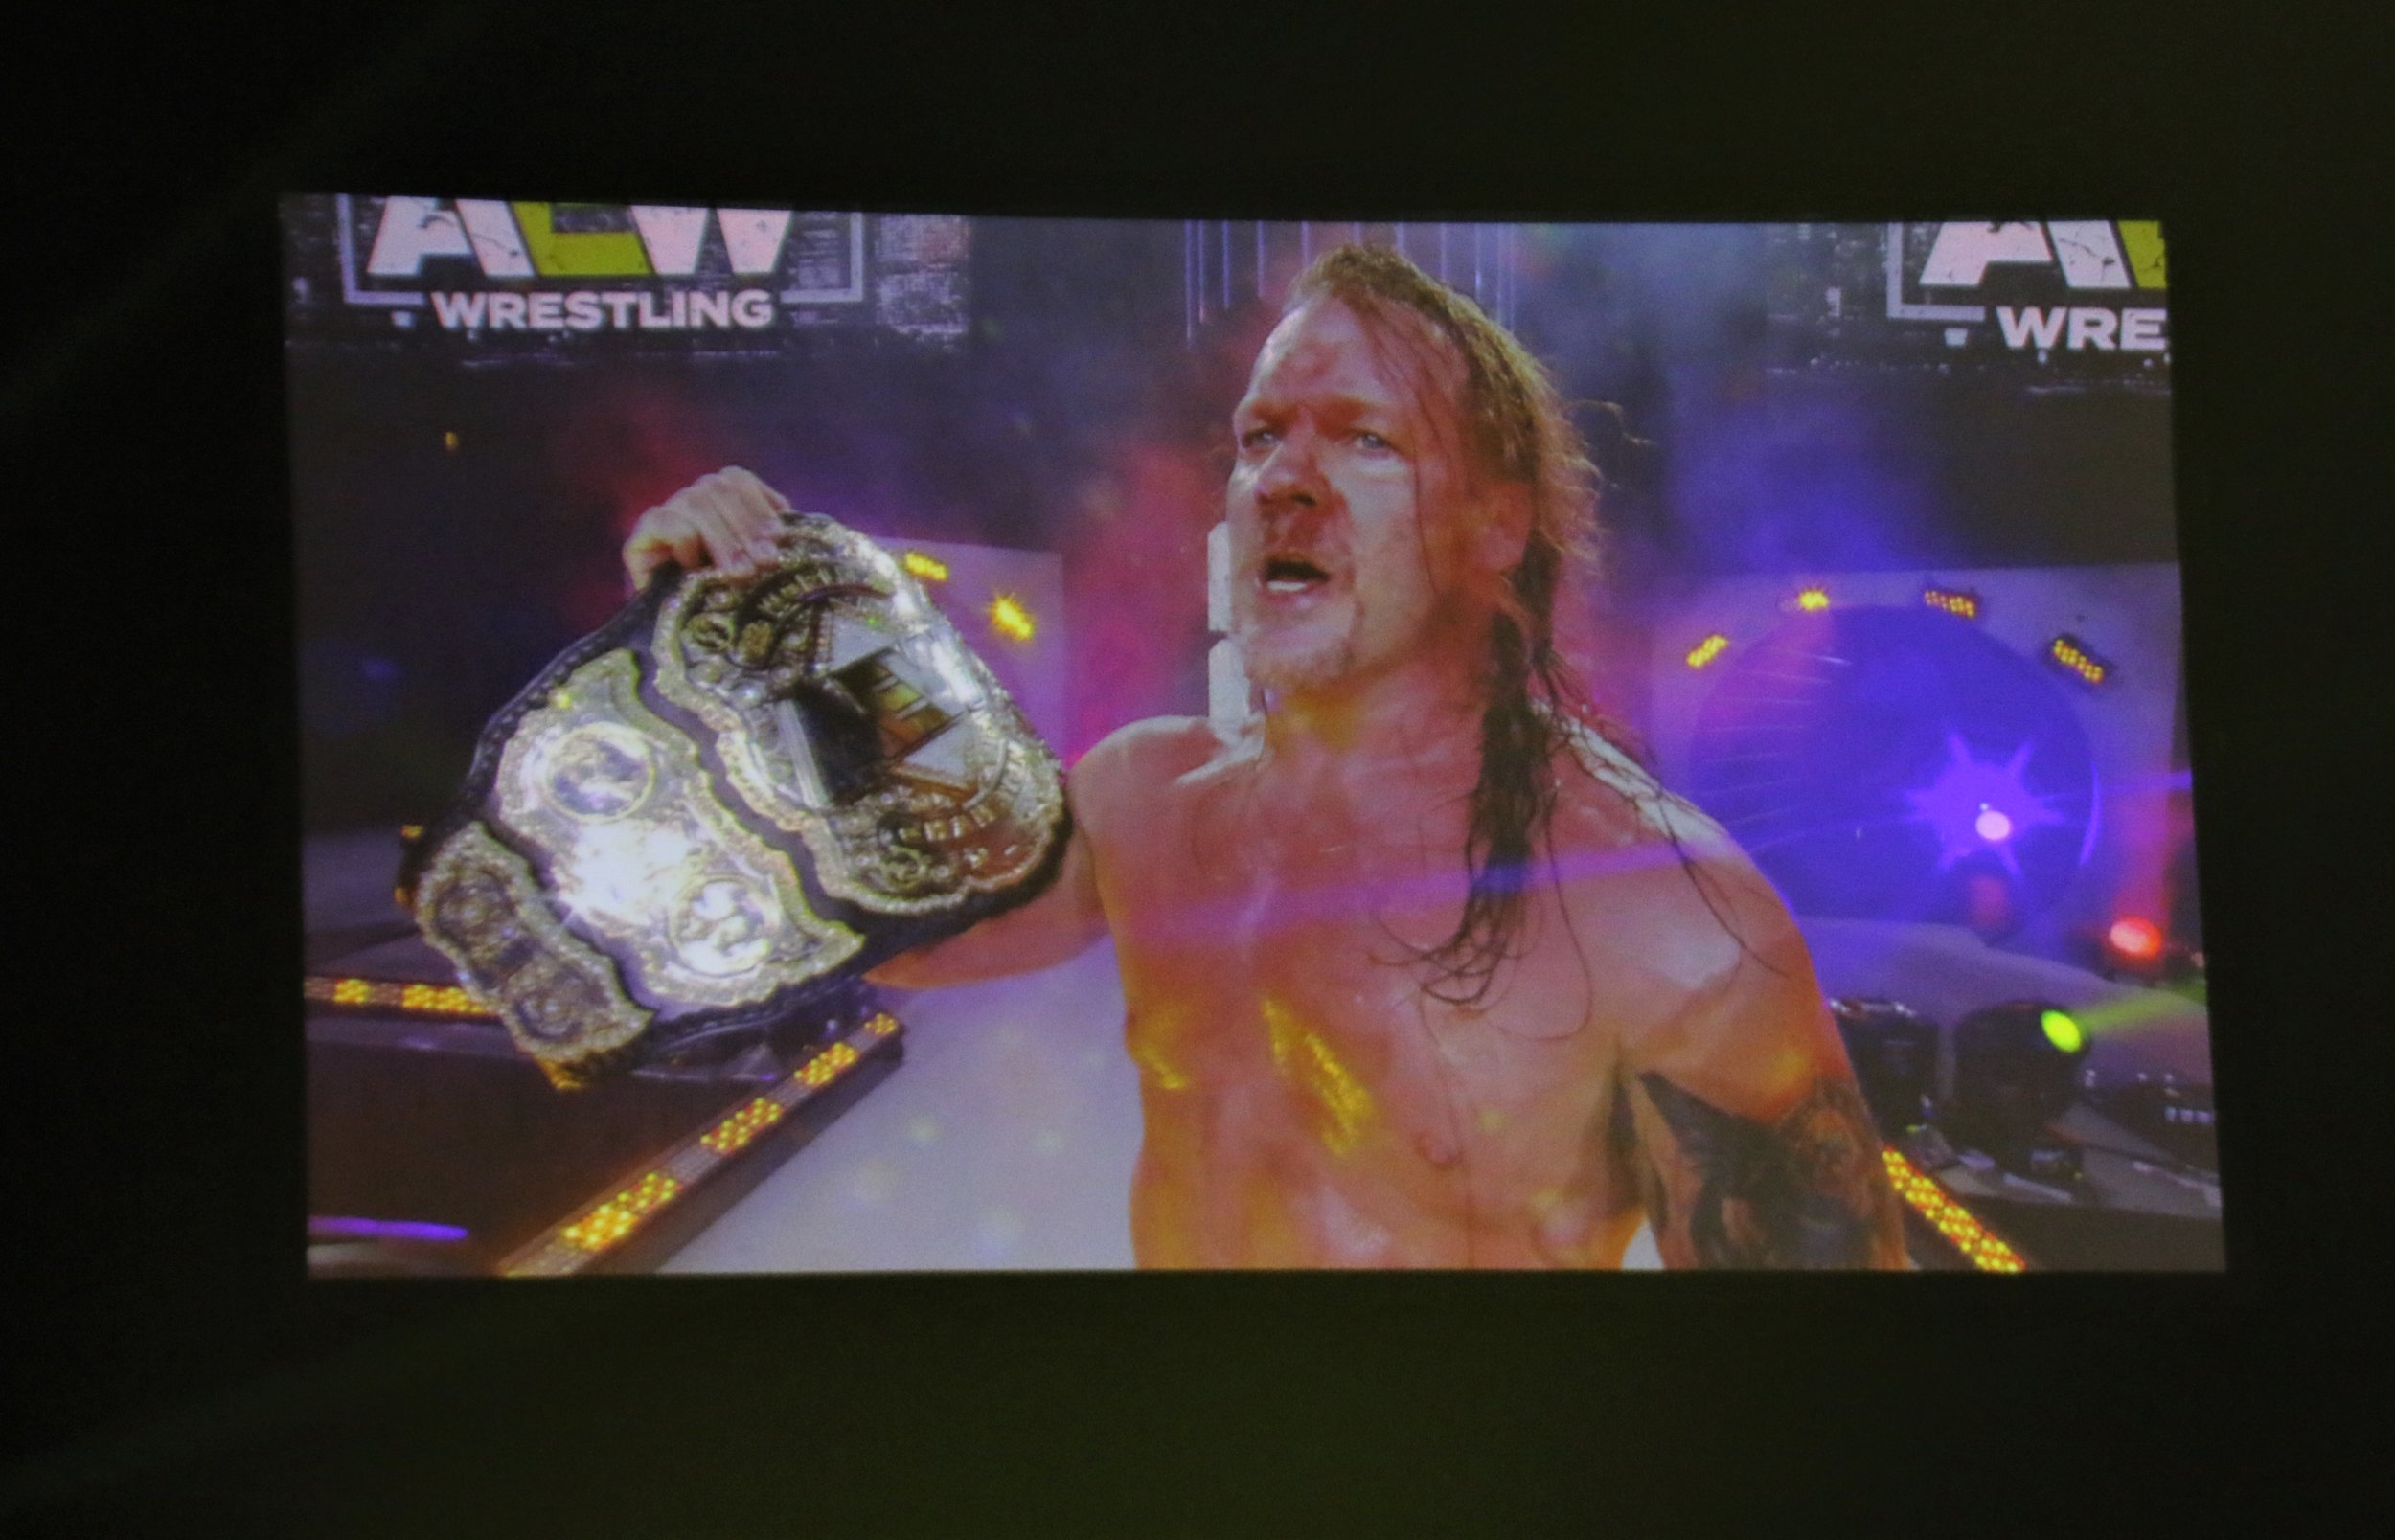 Chris Jericho celebates with the AEW Championship.